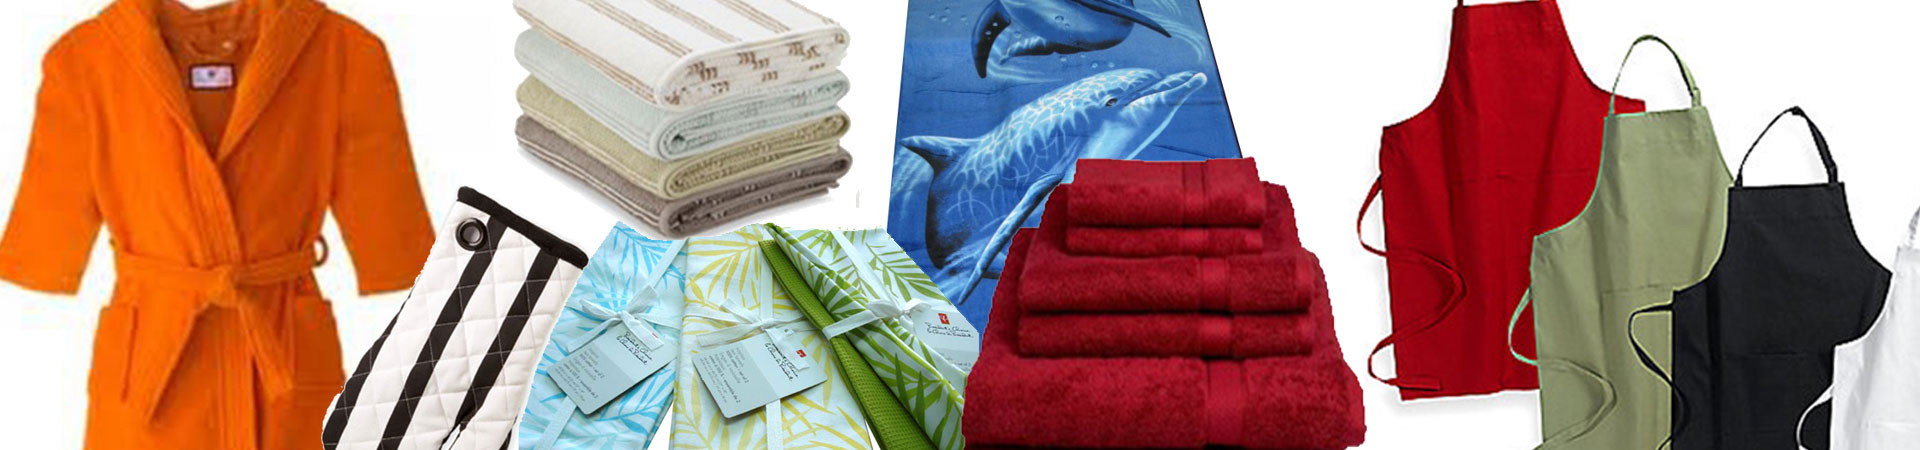 Manchester and linen accessories